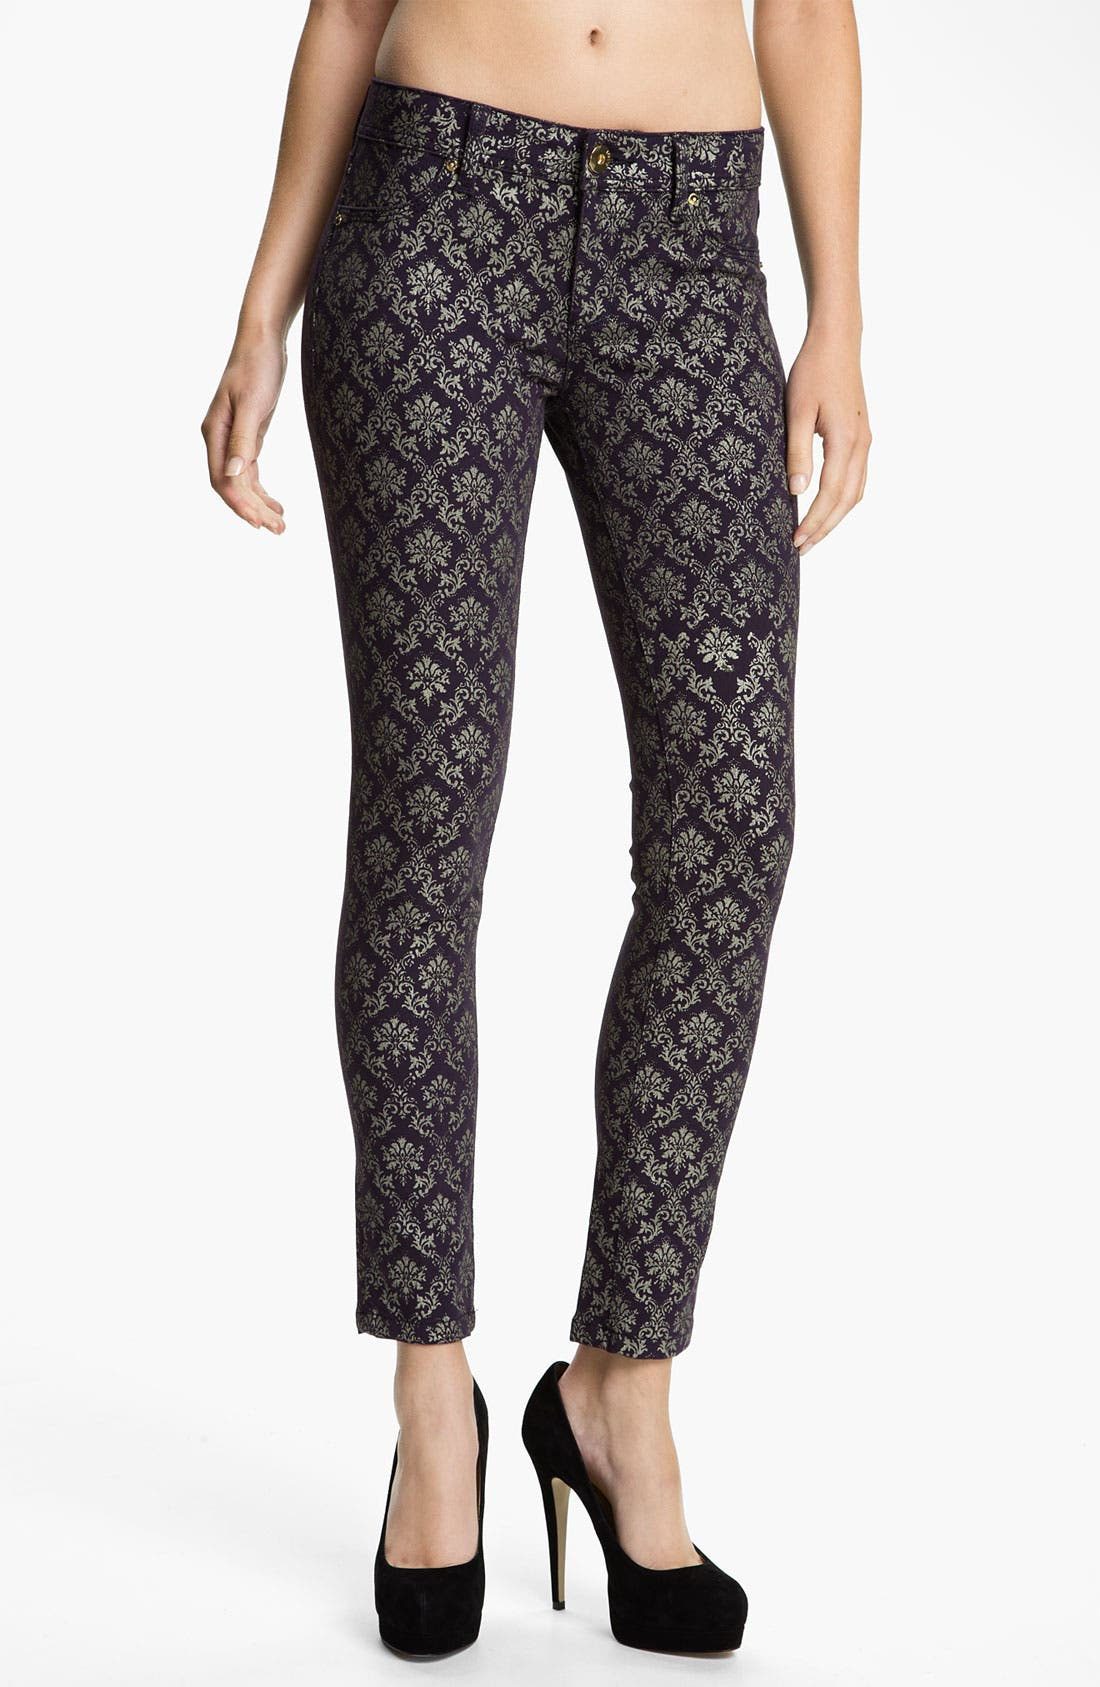 Alternate Image 1 Selected - DL1961 'Emma' Skinny Jeans (Ornate)